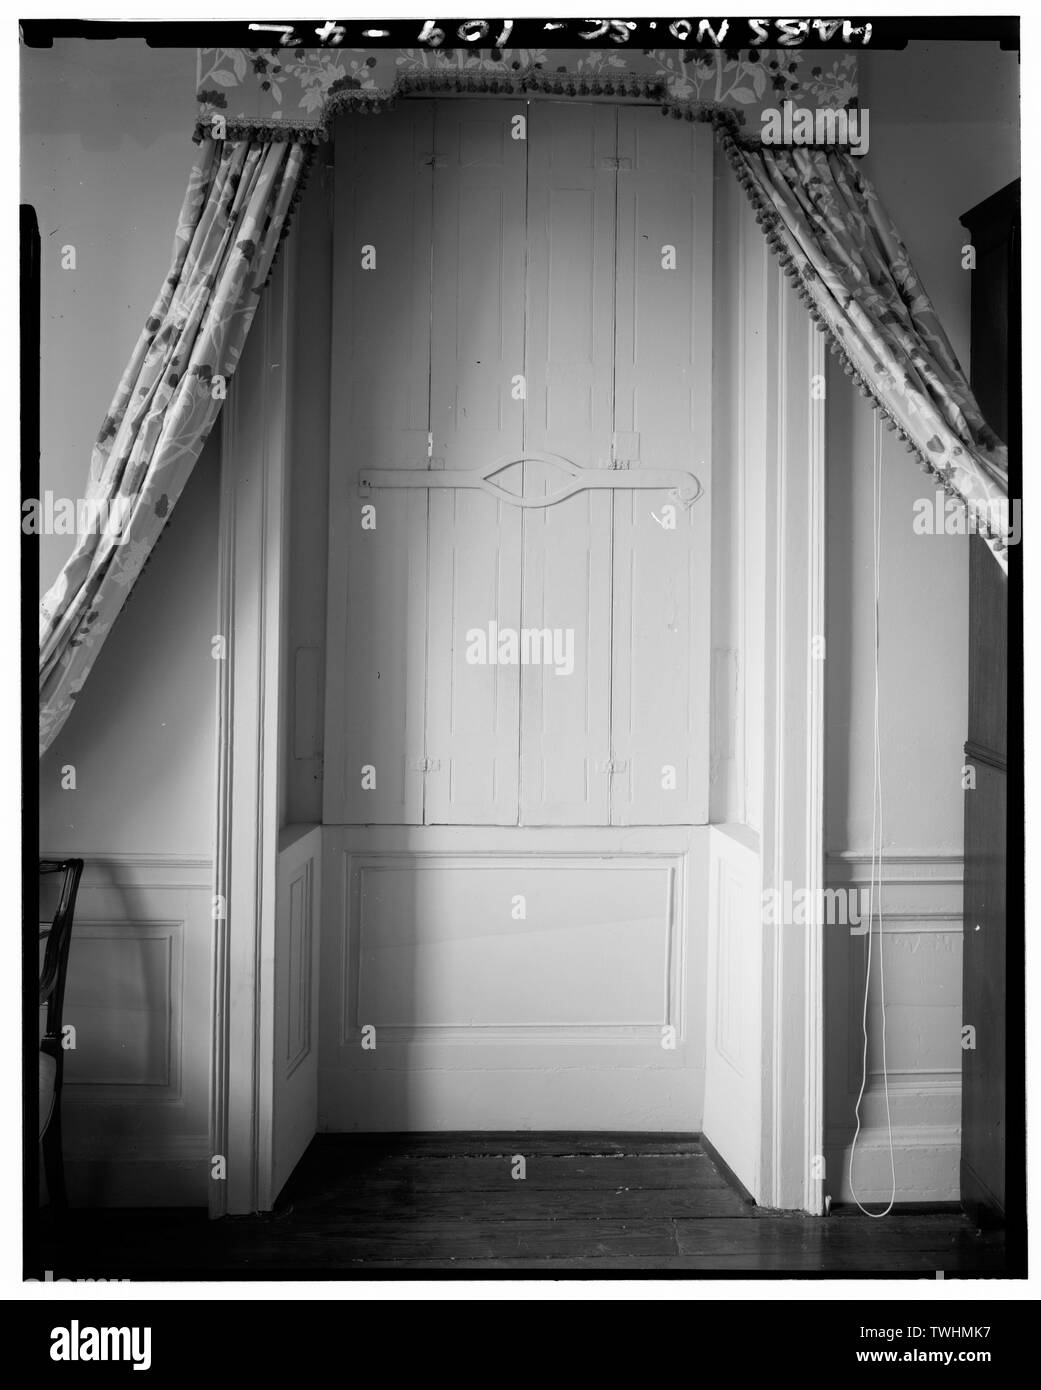 SECOND FLOOR- SOUTHWEST ROOM, WEST WINDOW DETAIL (typical interior paneling of shutter, shutter bar and recessed spandrel throughtout house) - William Blacklock House, 18 Bull Street, Charleston, Charleston County, SC - Stock Image